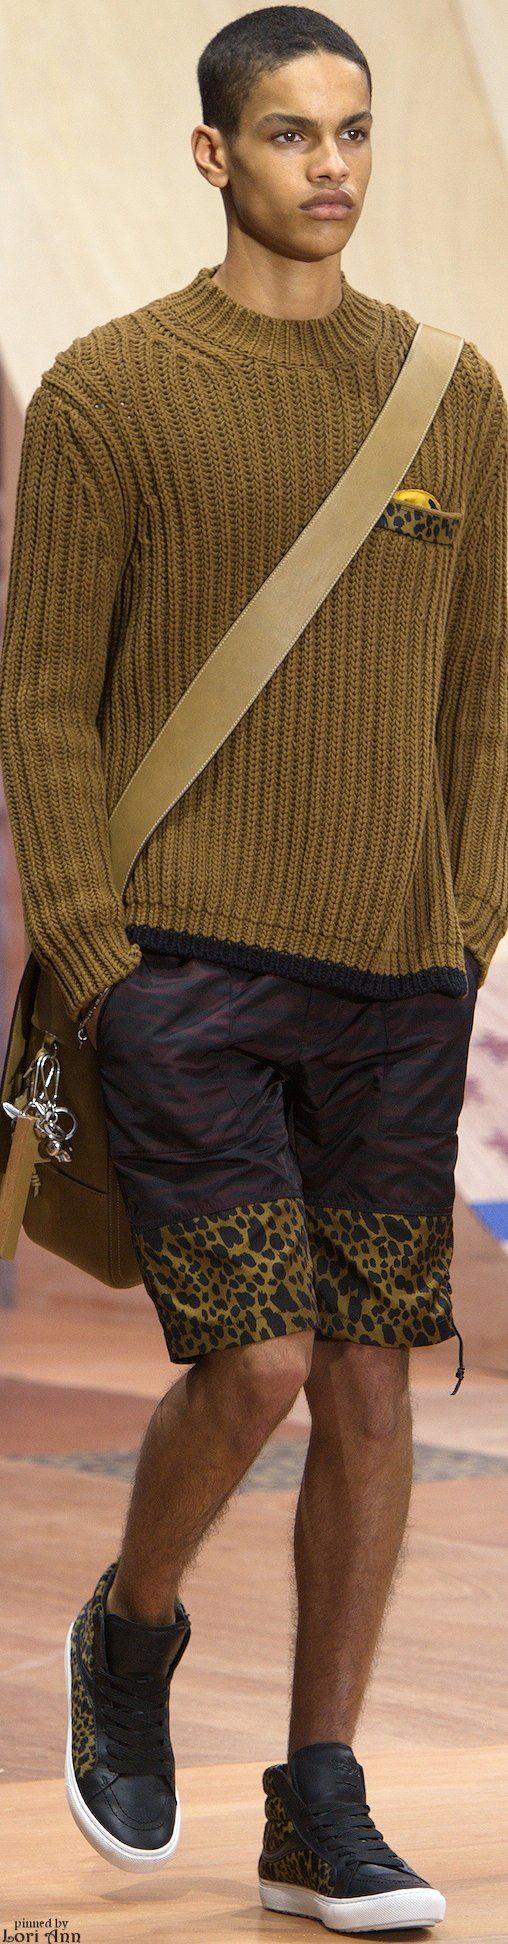 Coach Spring 2016 now this is #Surprising  love this look